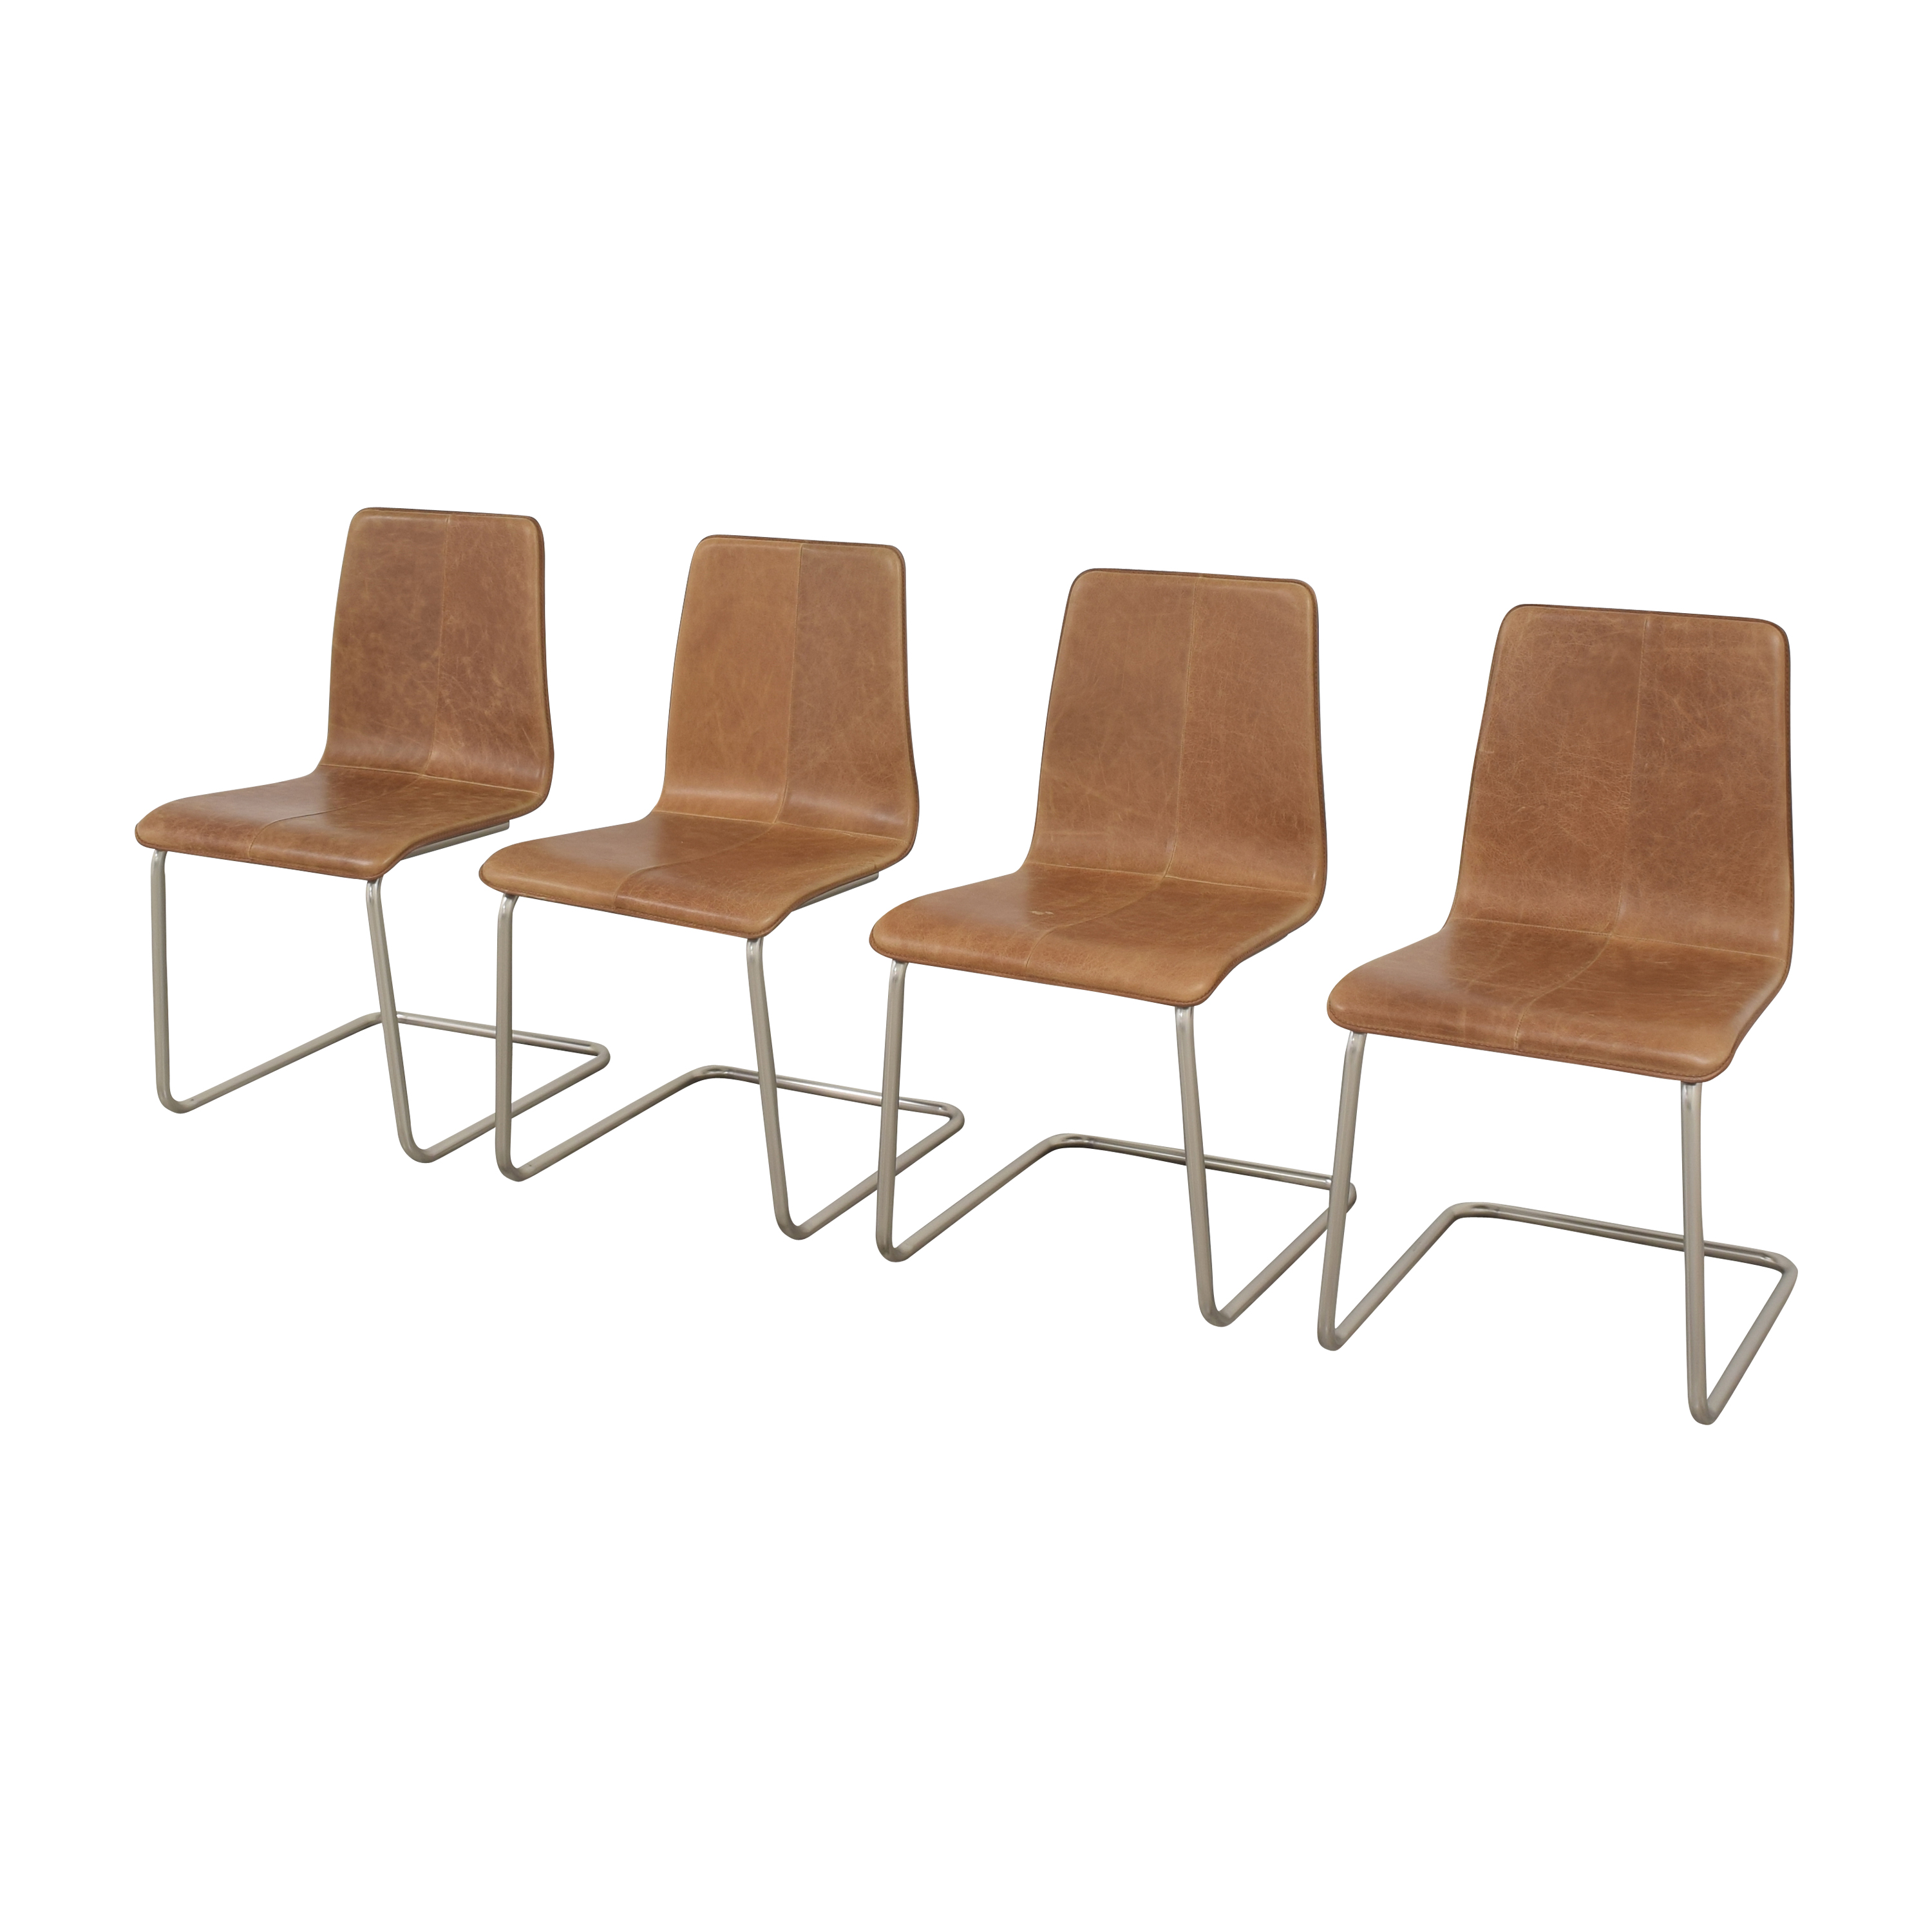 CB2 CB2 Pony Dining Chairs for sale